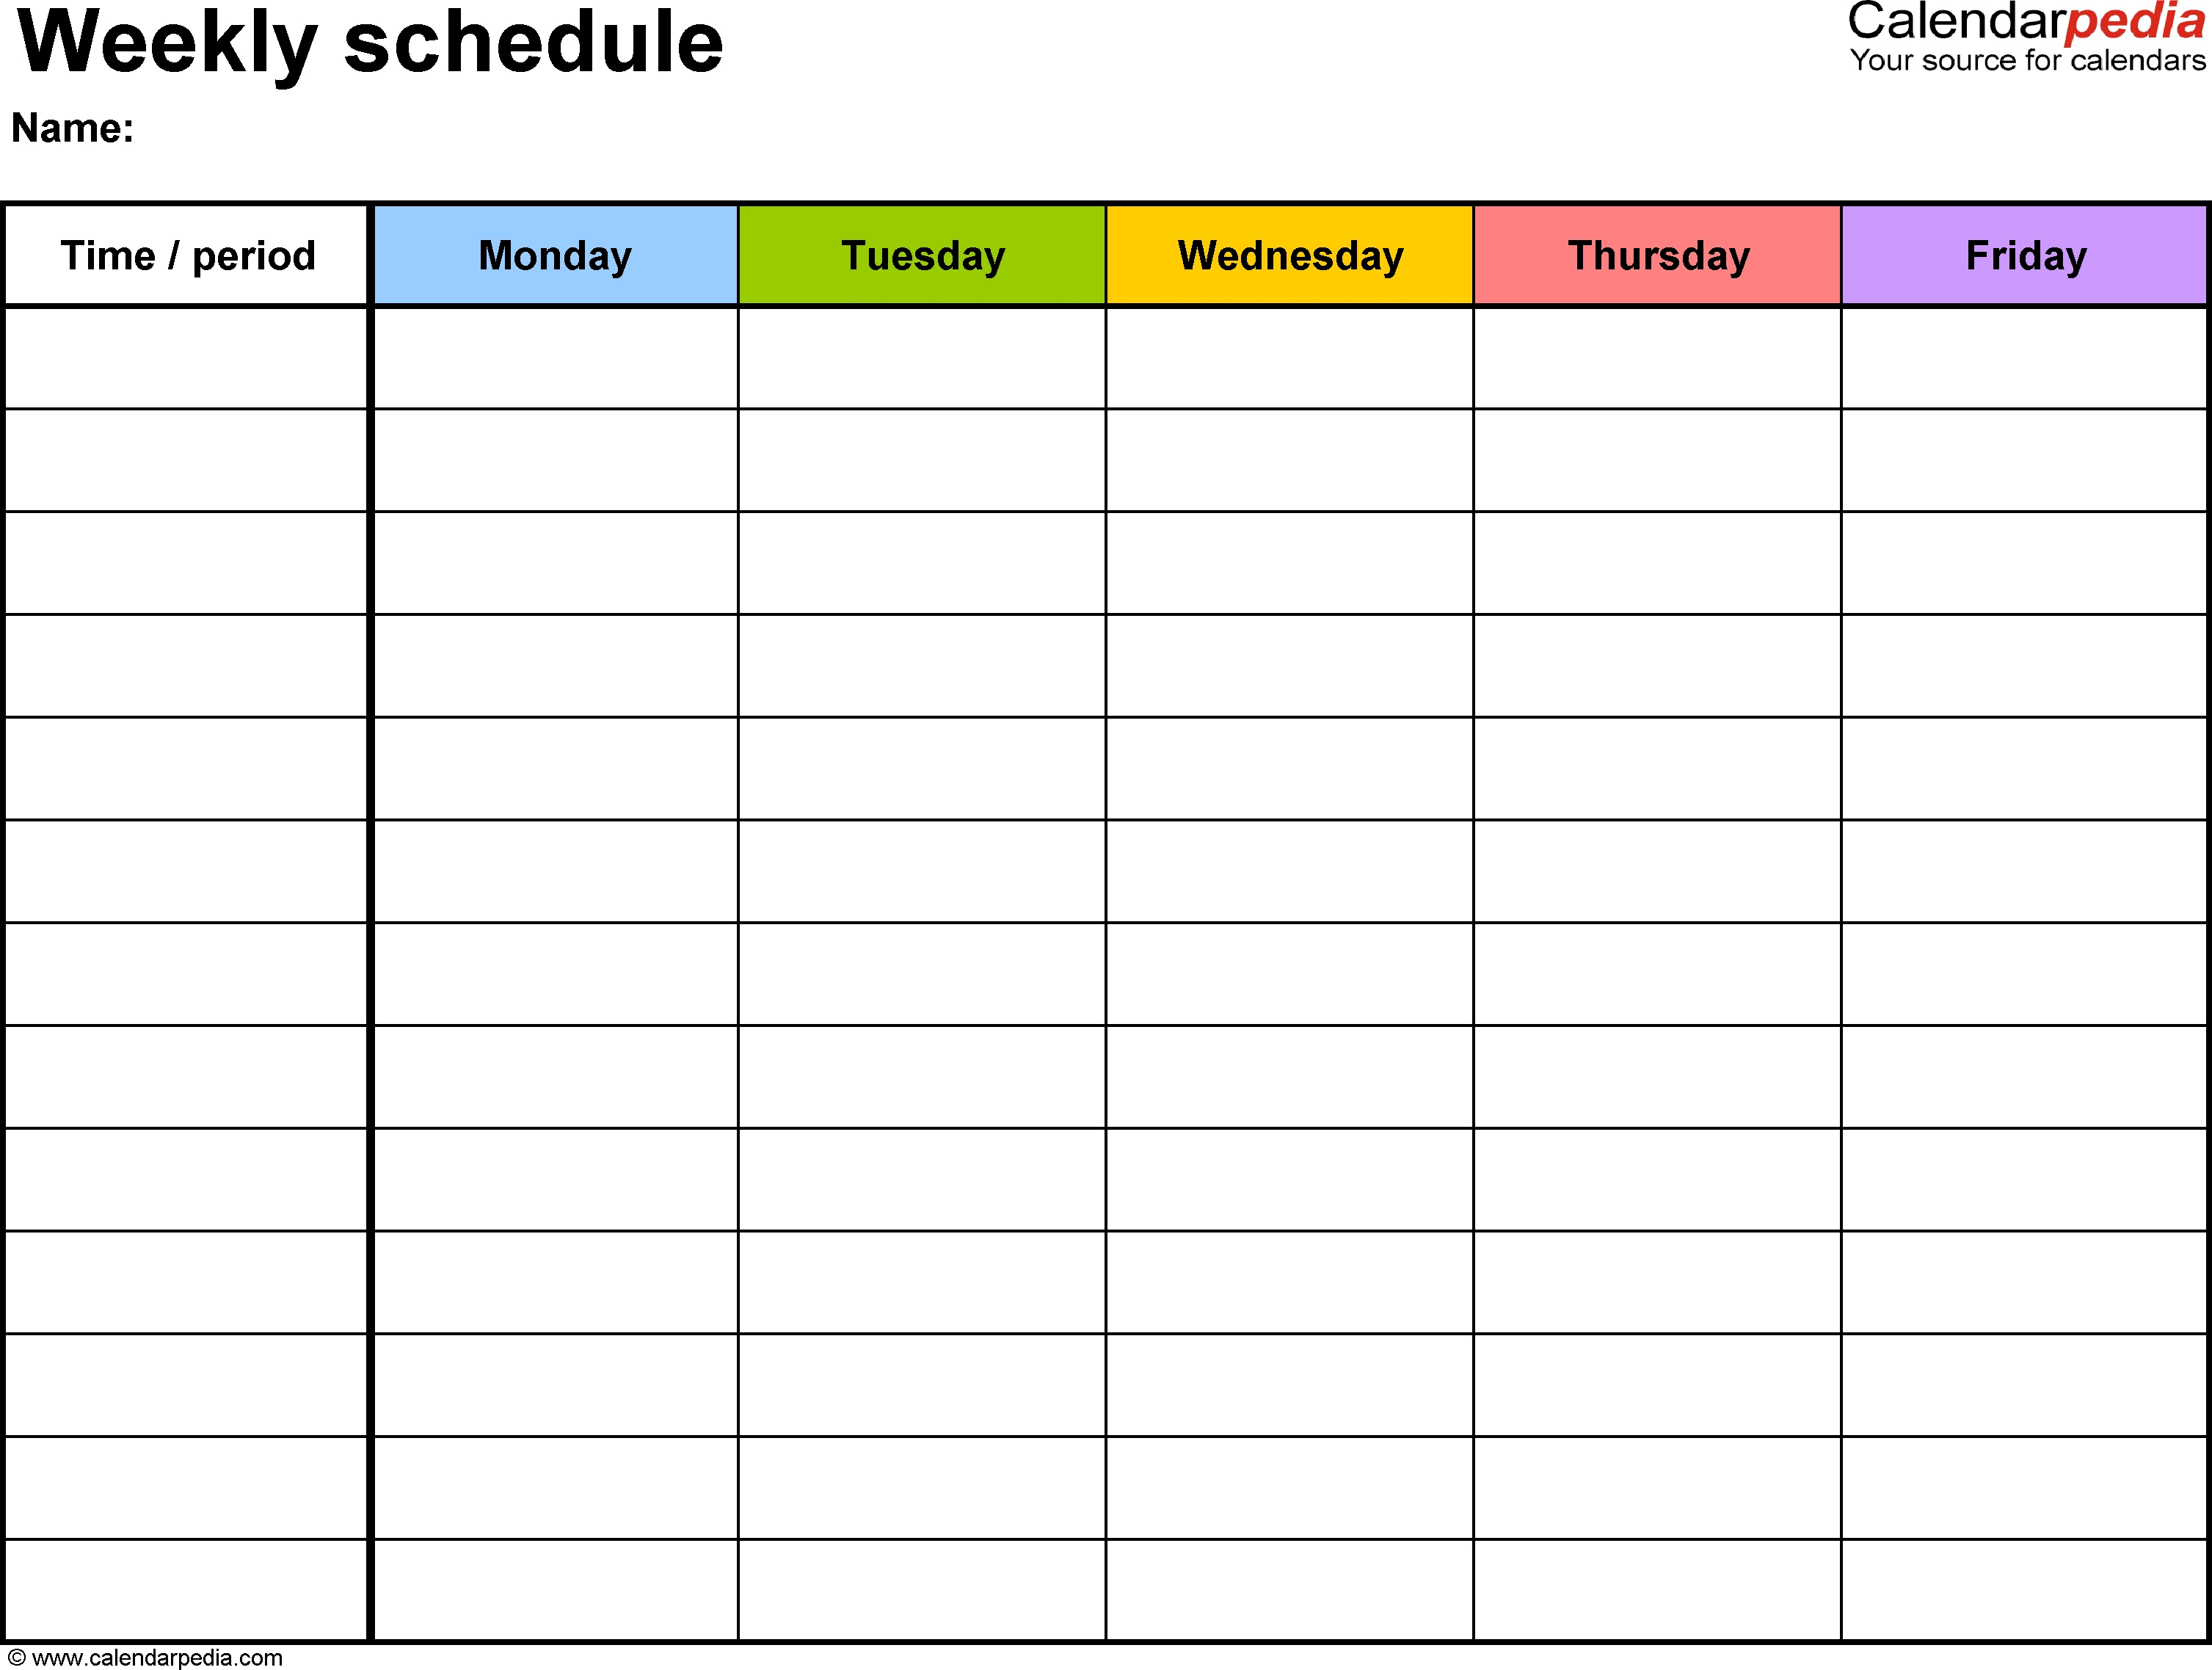 Free Weekly Schedule Templates For Word – 18 Templates-Blank Monday Through Friday Schedule Template Free